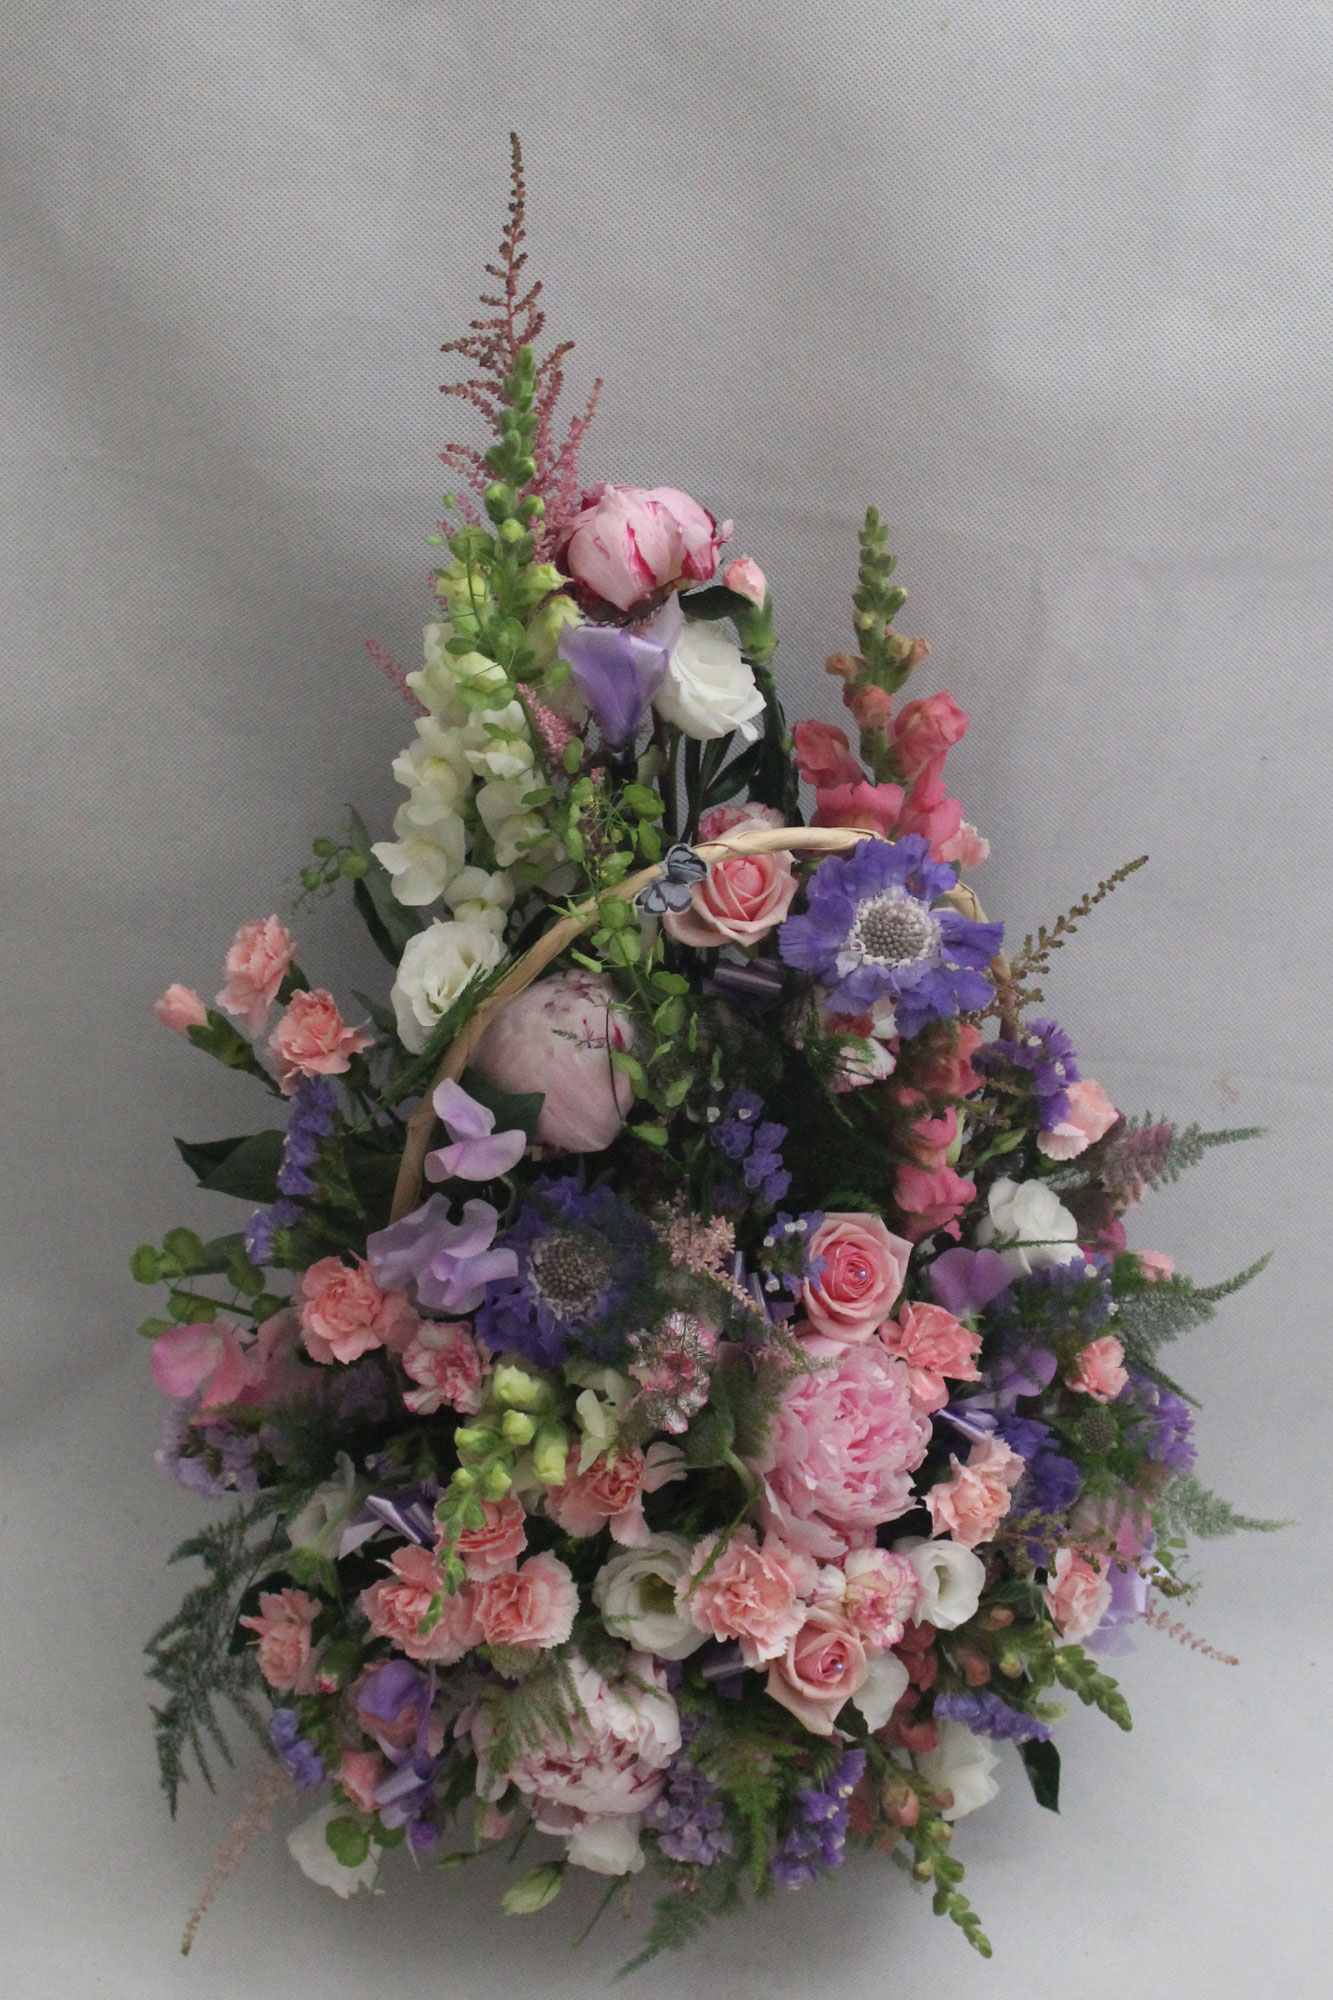 FRONT FACING WICKER BASKET ARRANGEMENT